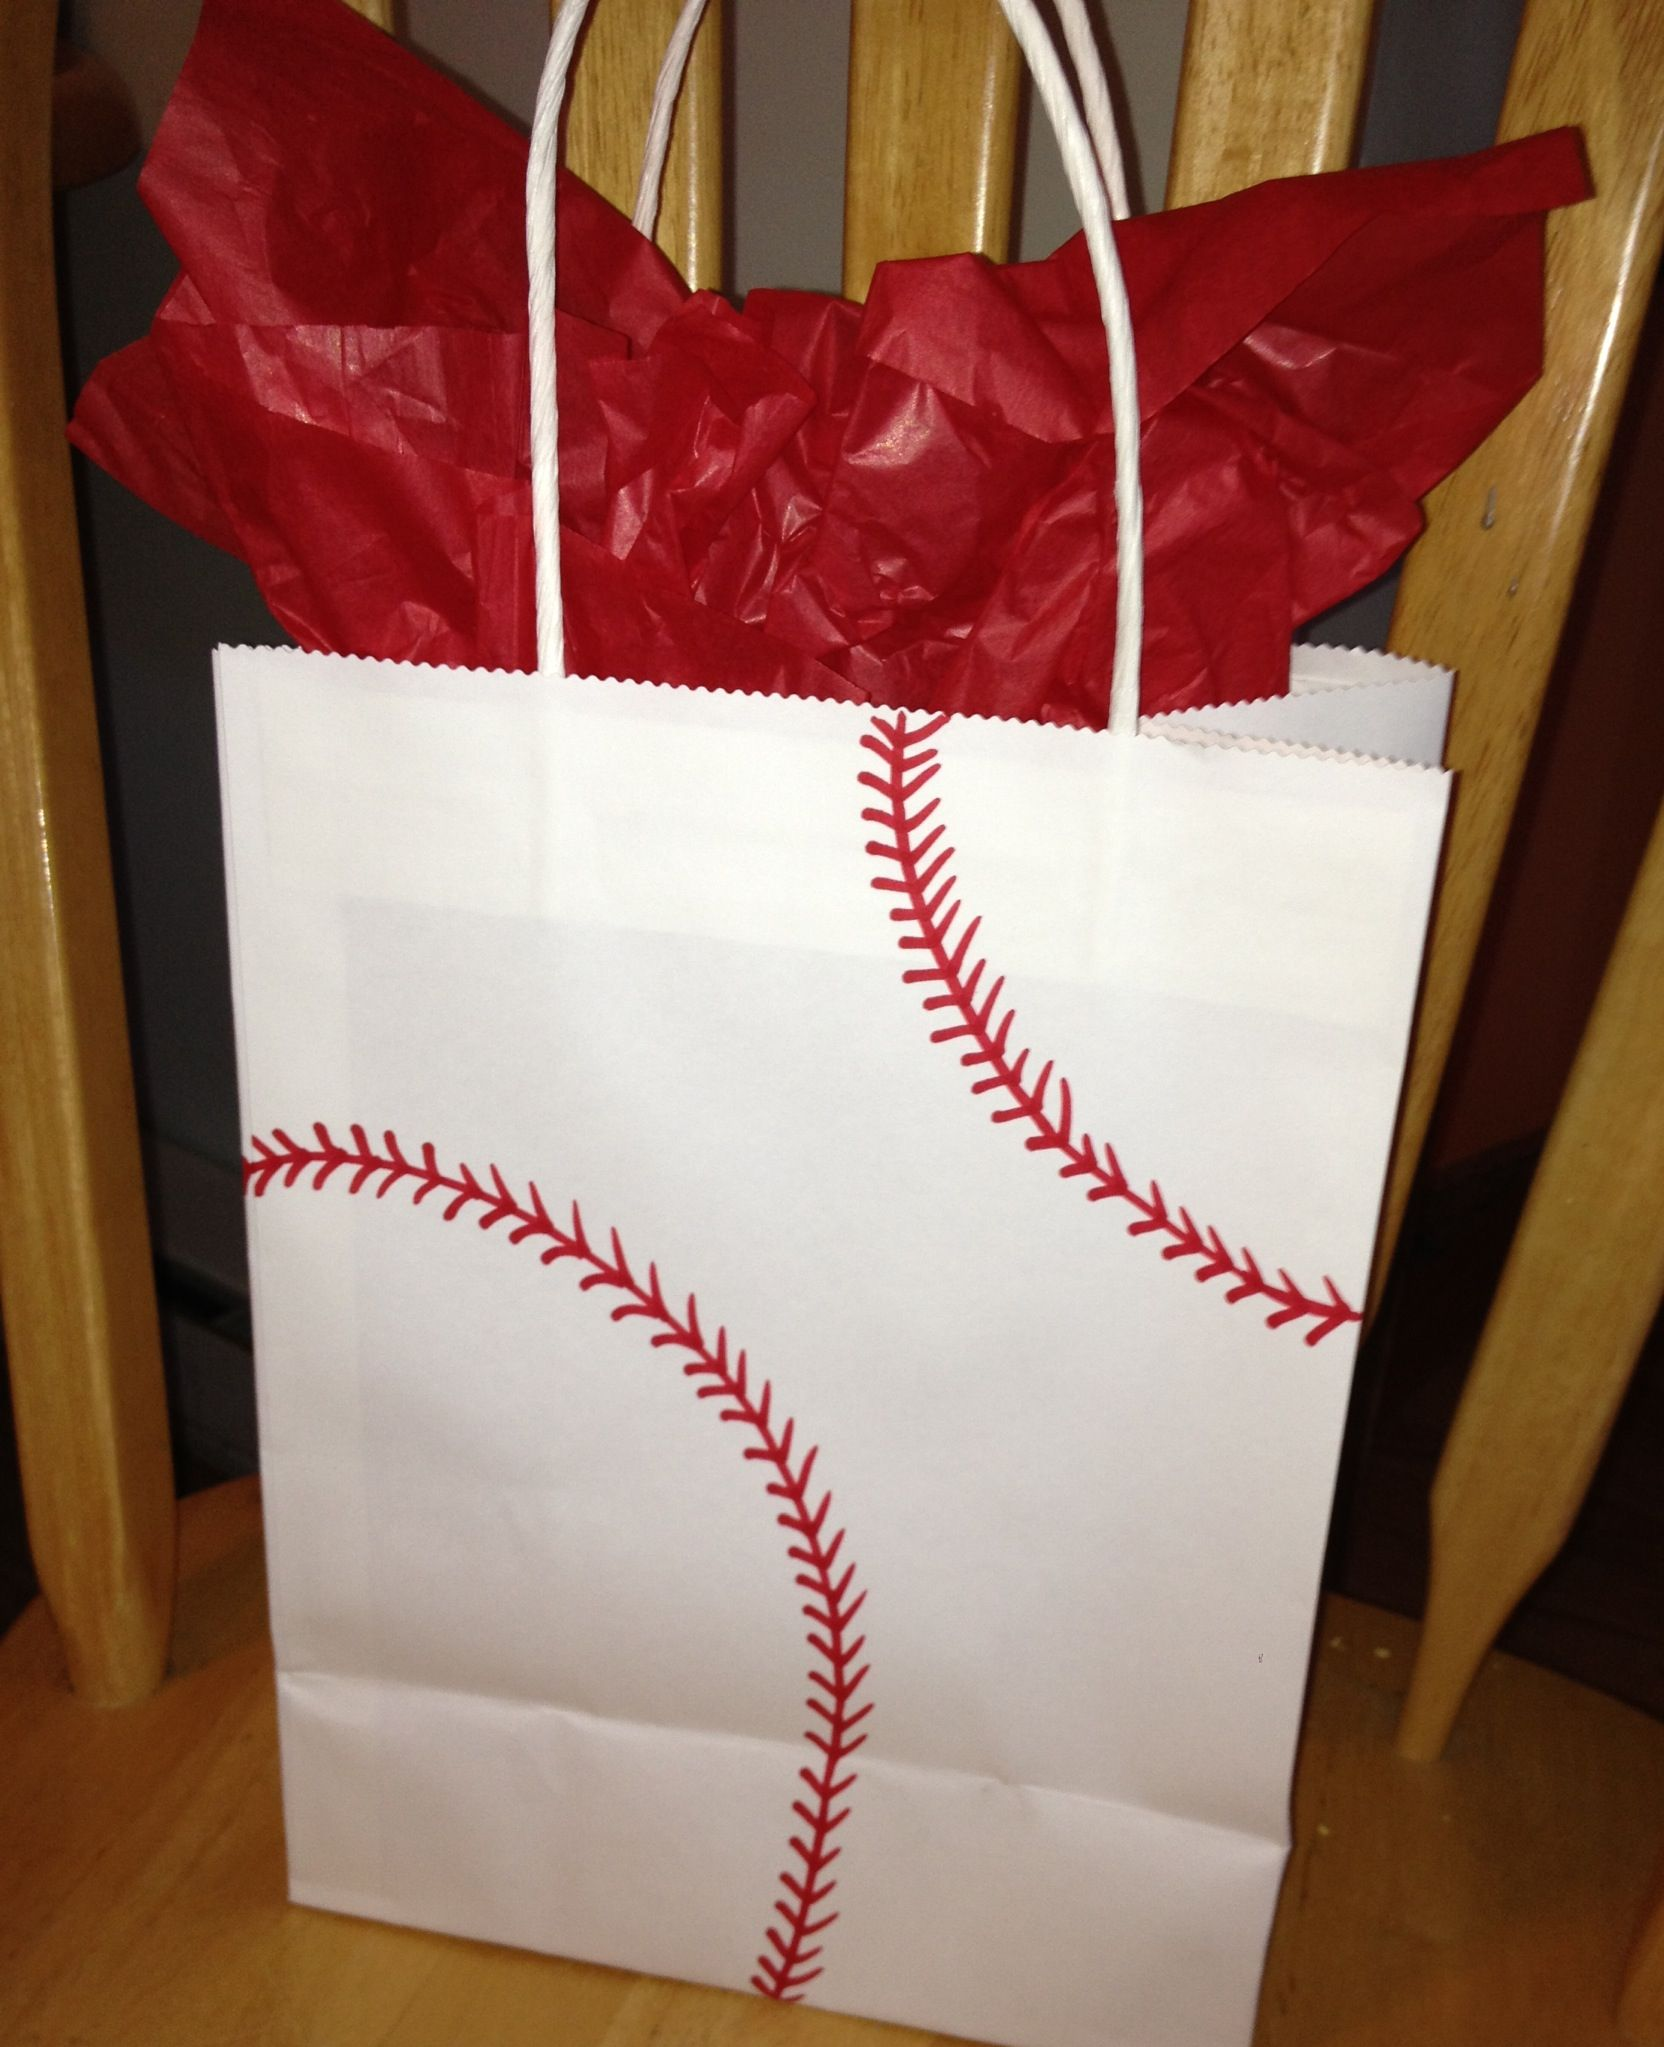 Quick and easy gift bag for a birthday or a coach. Buy a basic white bag and use red sharpie to create baseball/softball stitching. & Quick and easy gift bag for a birthday or a coach. Buy a basic white ...